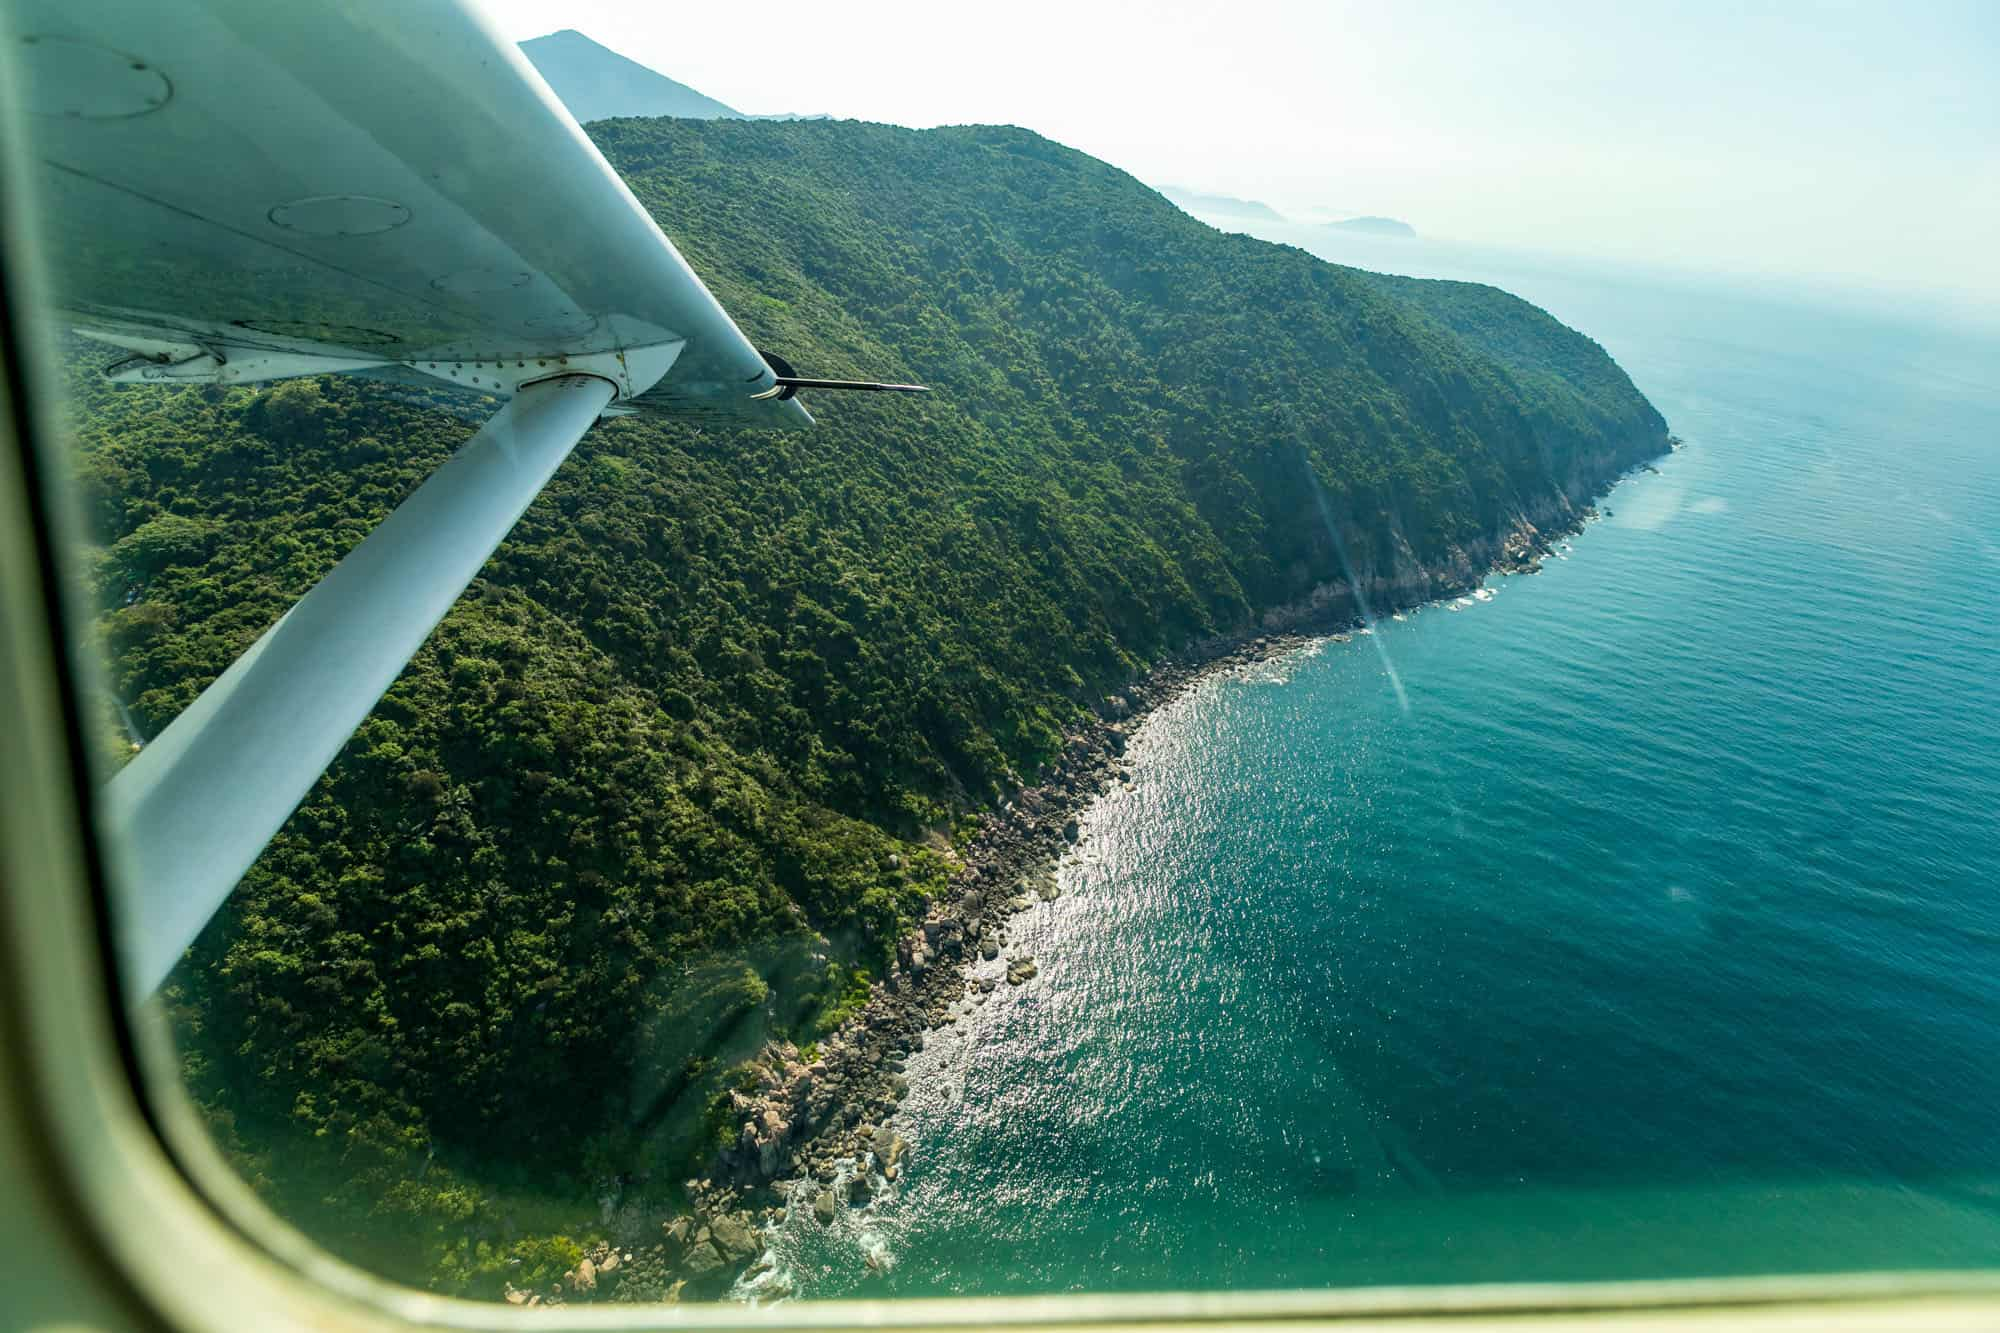 Travel from Hue to Hoi An by seaplane